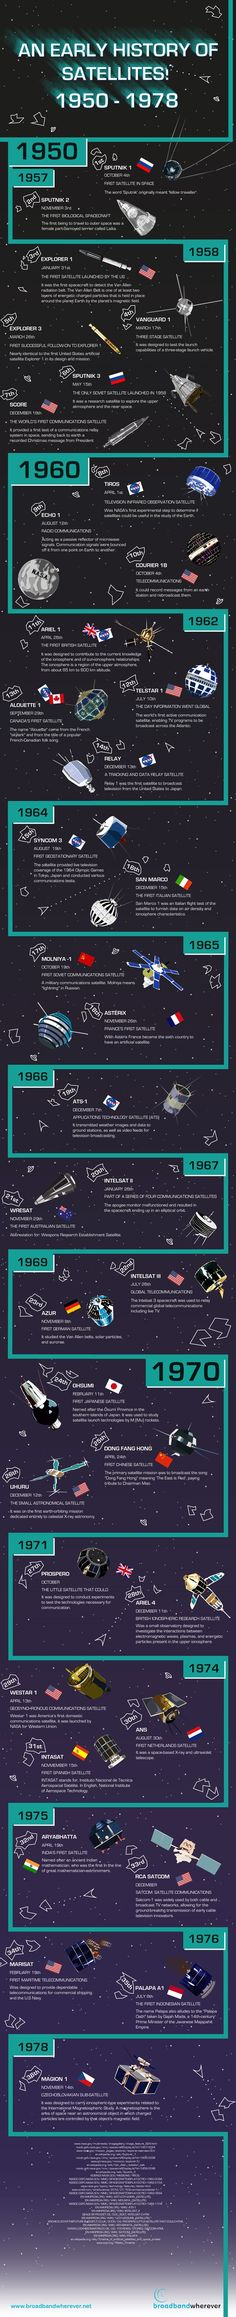 Early History of Satellites.